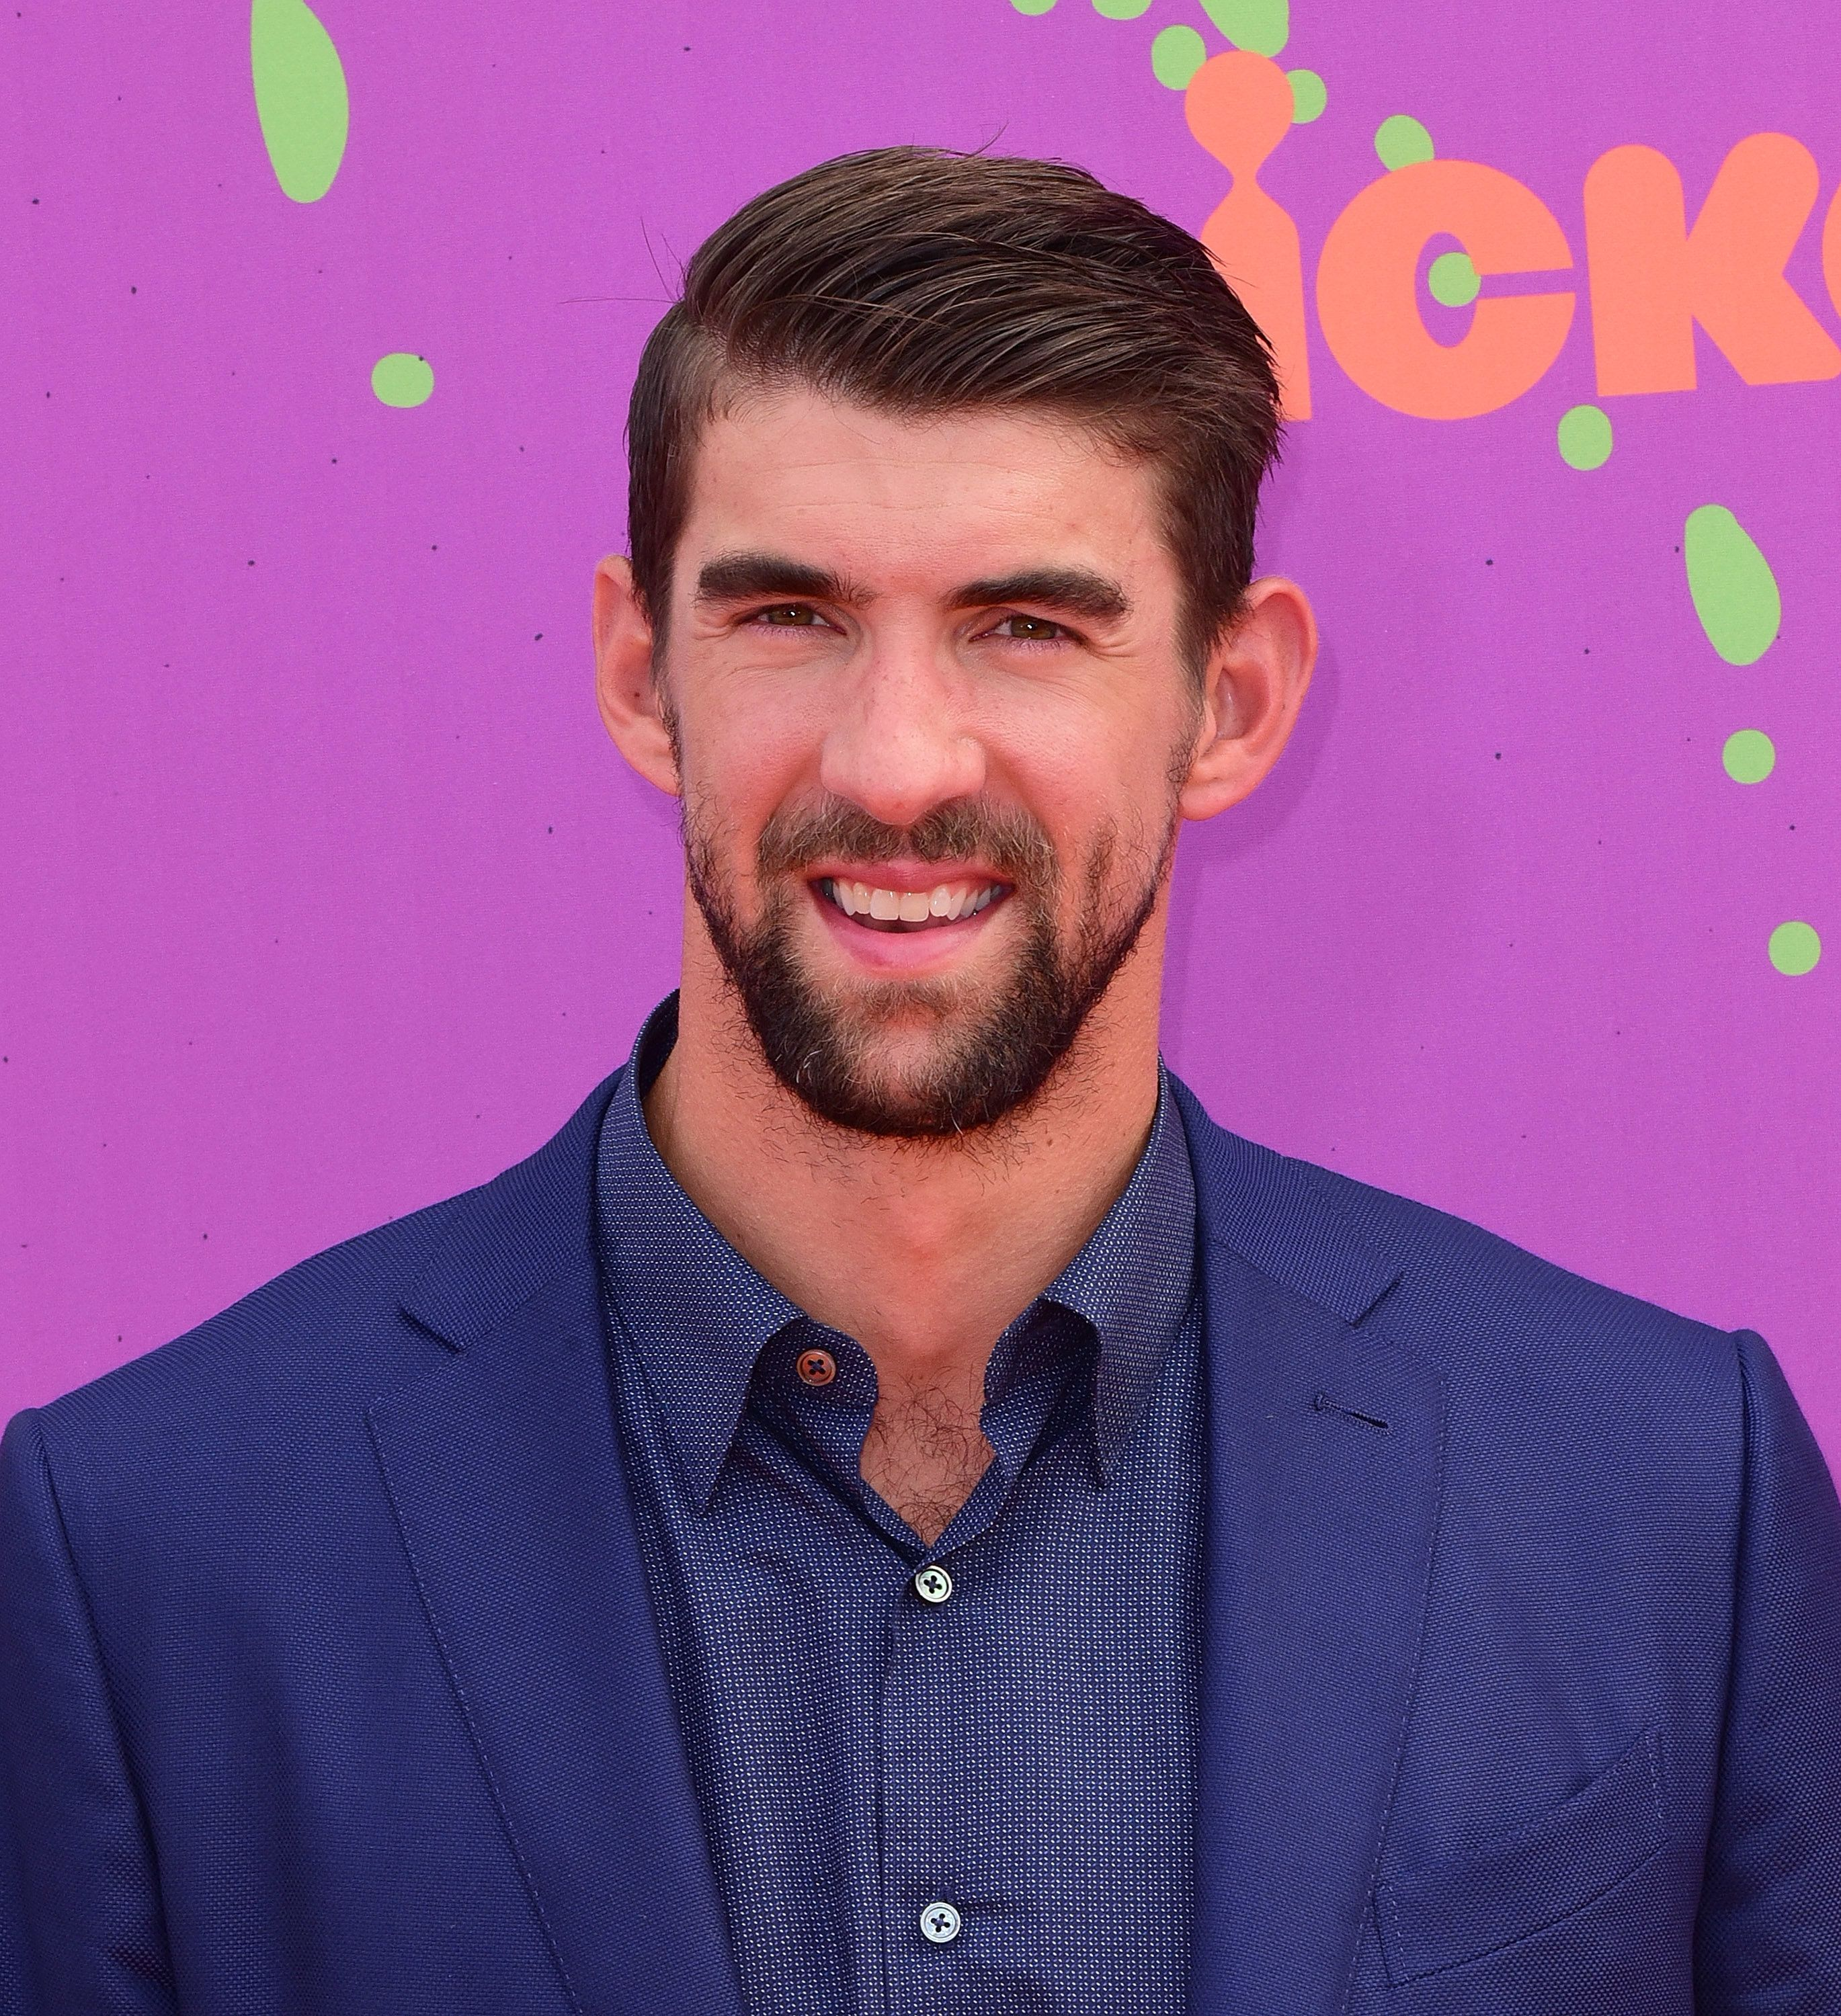 LOS ANGELES, CA - JULY 13:  Olympic Swimmer Michael Phelps attends the 2017 Nickelodeon Kids' Choice Sports Awards at Pauley Pavilion on July 13, 2017 in Los Angeles, California.  (Photo by C Flanigan/Getty Images)